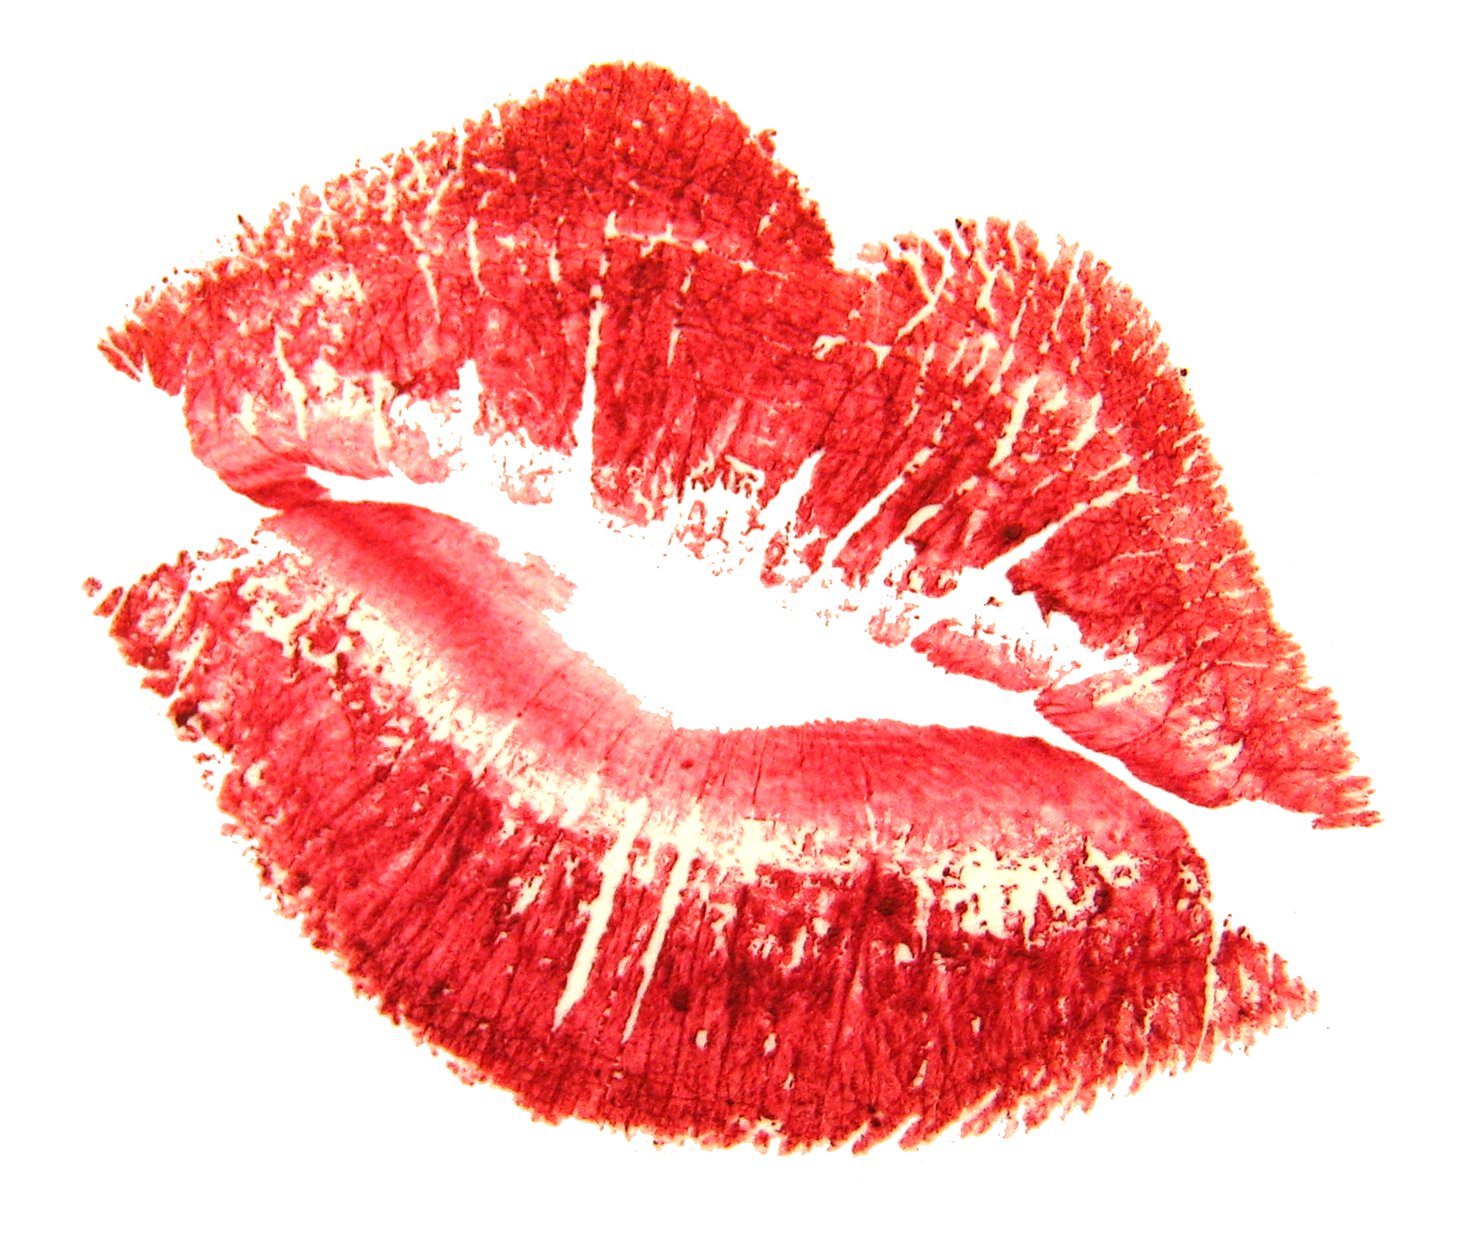 clipart royalty free stock Clipartfest cliparting com . Clipart kiss